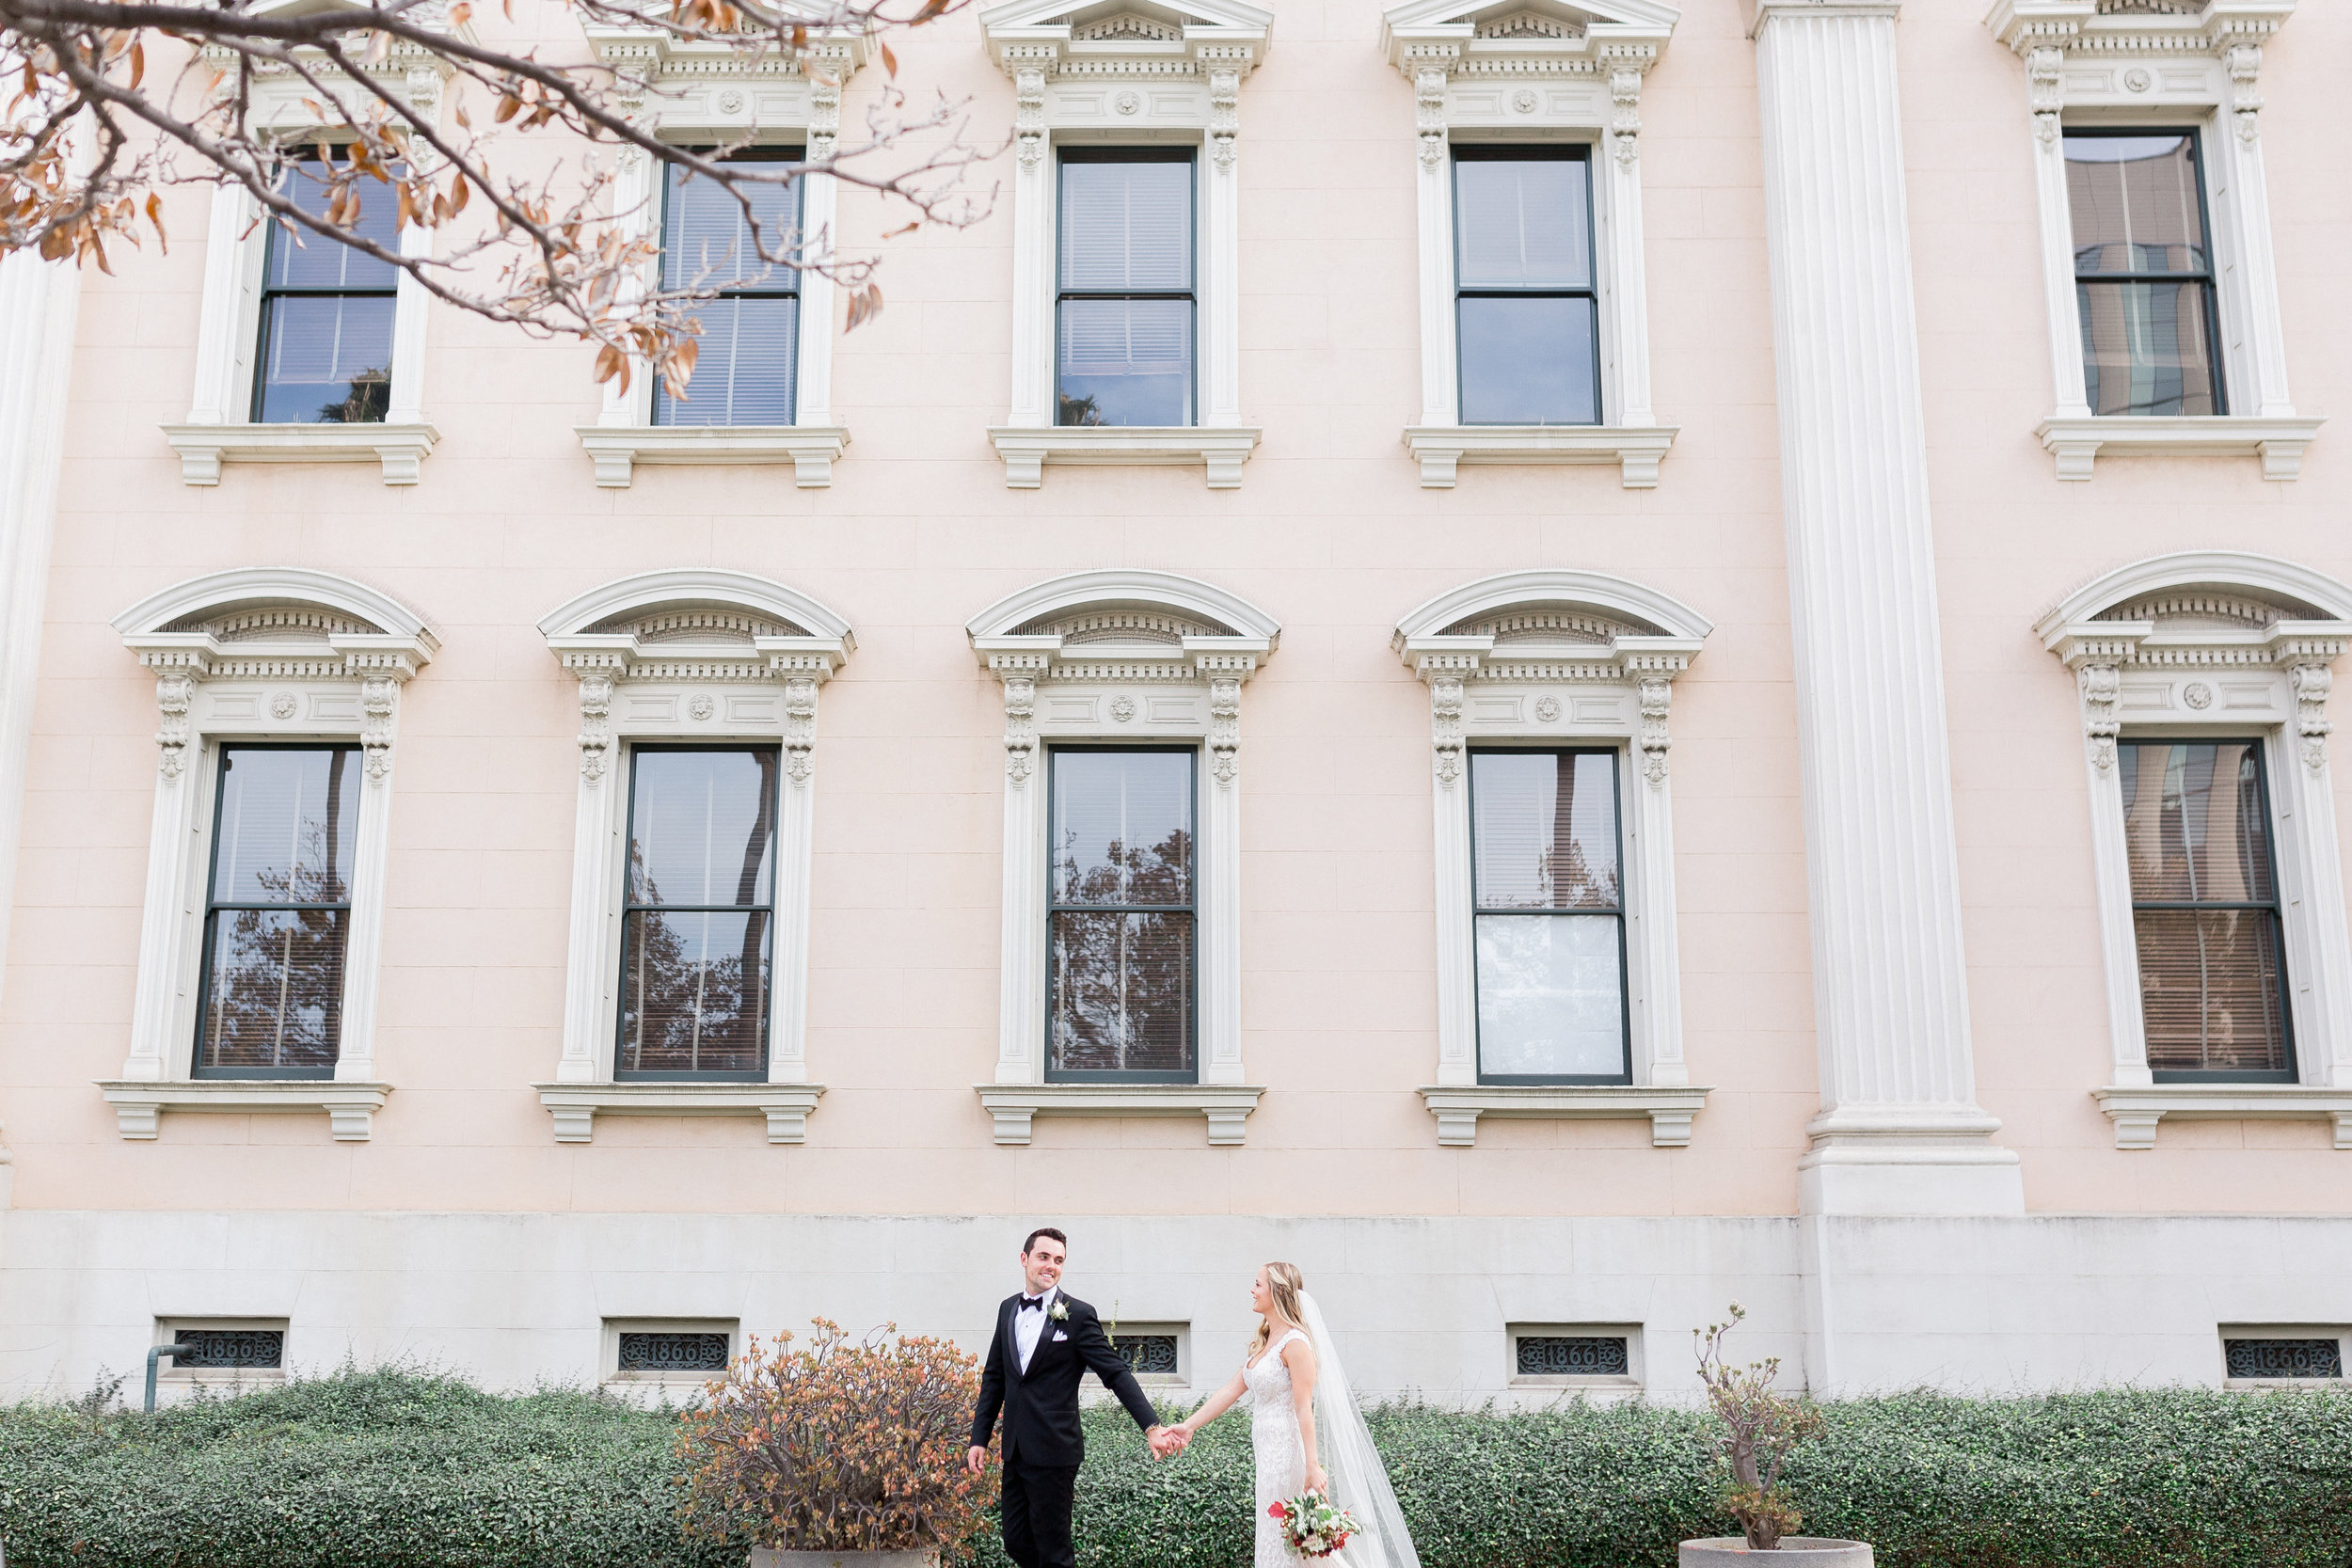 San-Francisco-wedding-photographer-travels-to-San-Jose-for-bride-and-groom-photos-outdoors (71 of 335).jpg